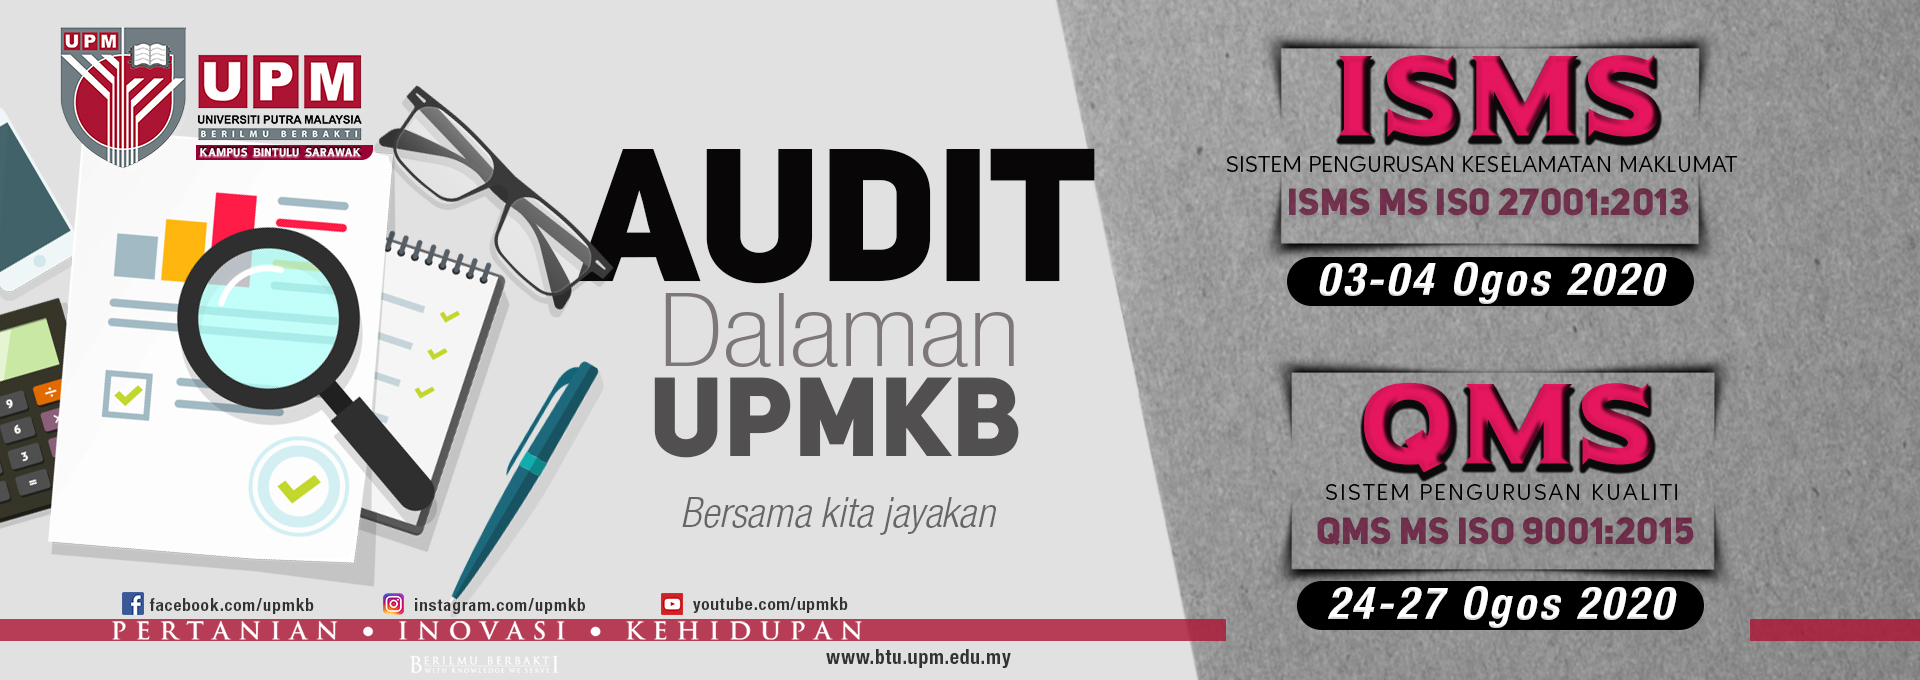 Audit QMS and ISMS Dalaman